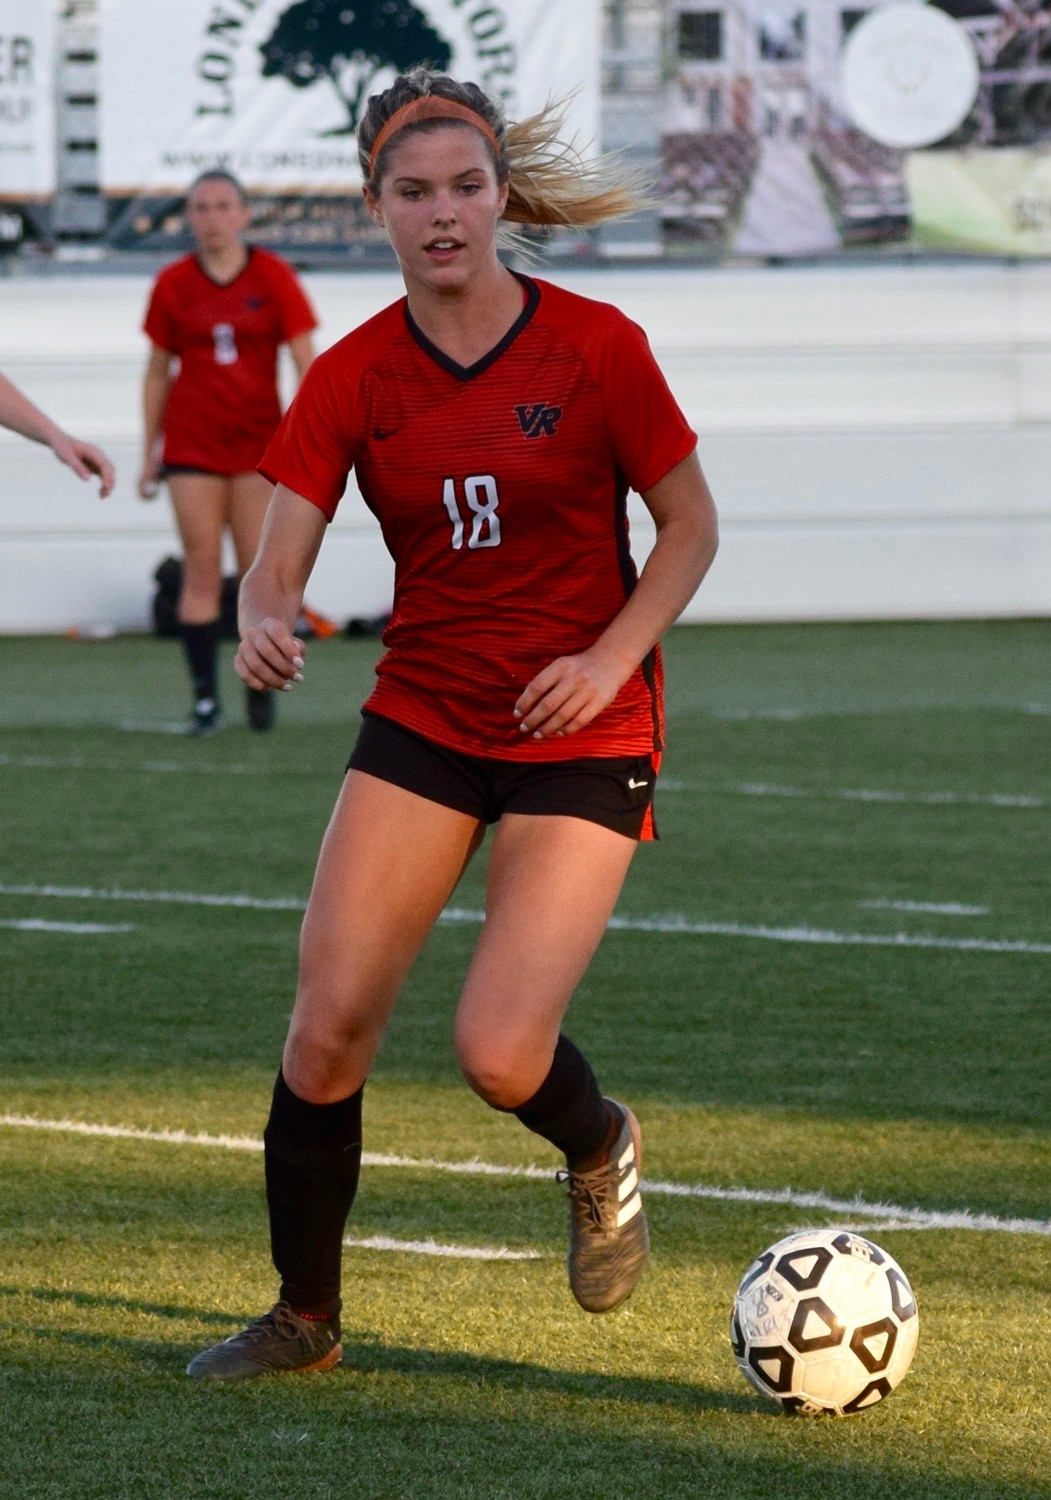 Kaitlynn John and Vista Ridge lost to San Antonio Johnson 3-1 in Dripping Springs on Thursday night.